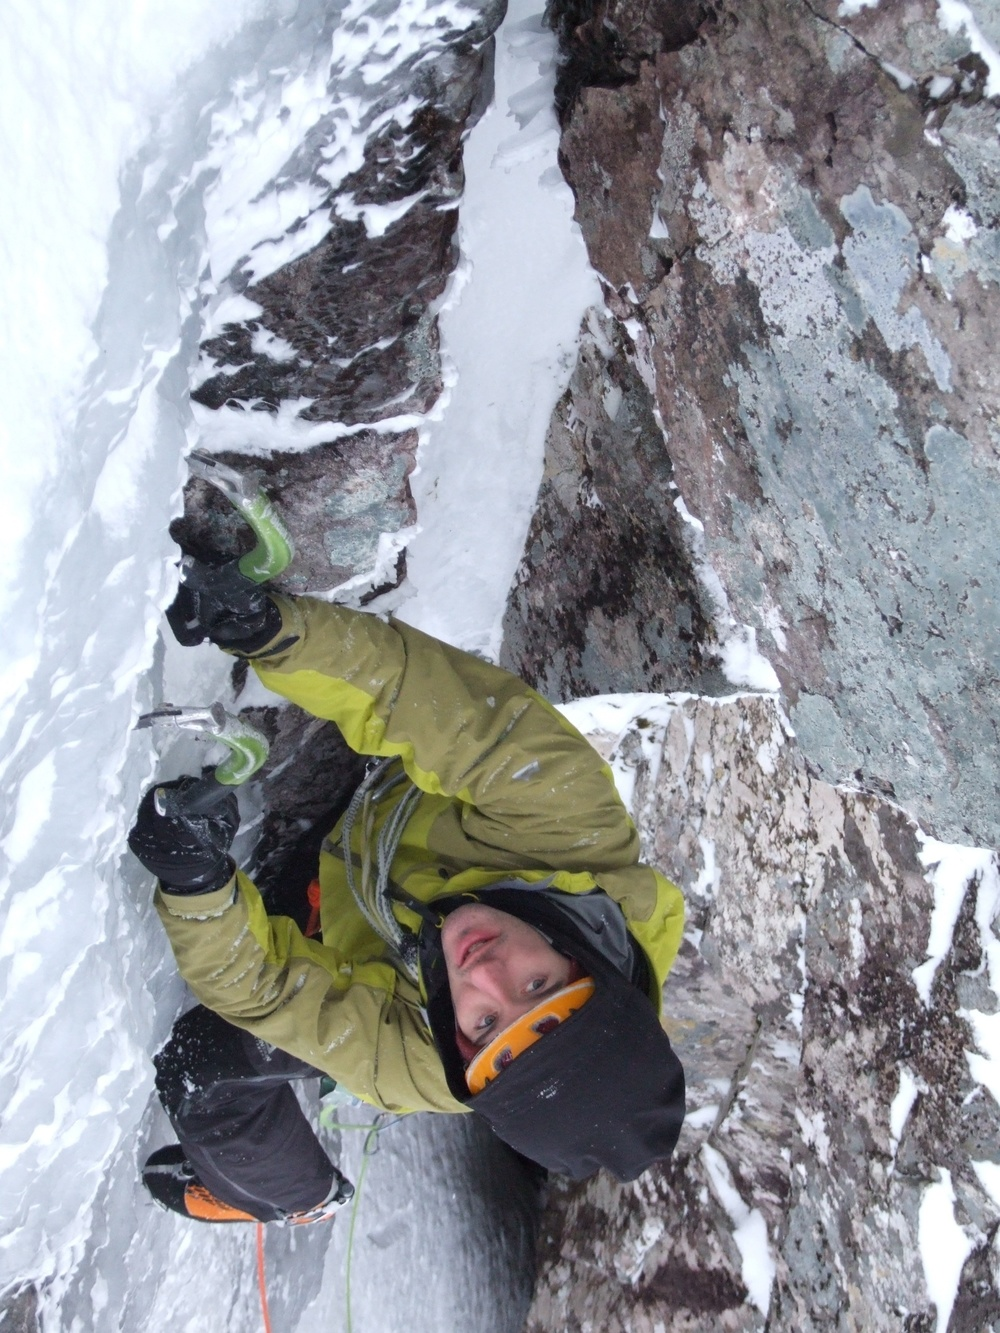 The Pinnacle-Dave MacLeod Climbing Minus Three Gully on Ben Nevis - Pic Paul Diffley - under 2M.jpg